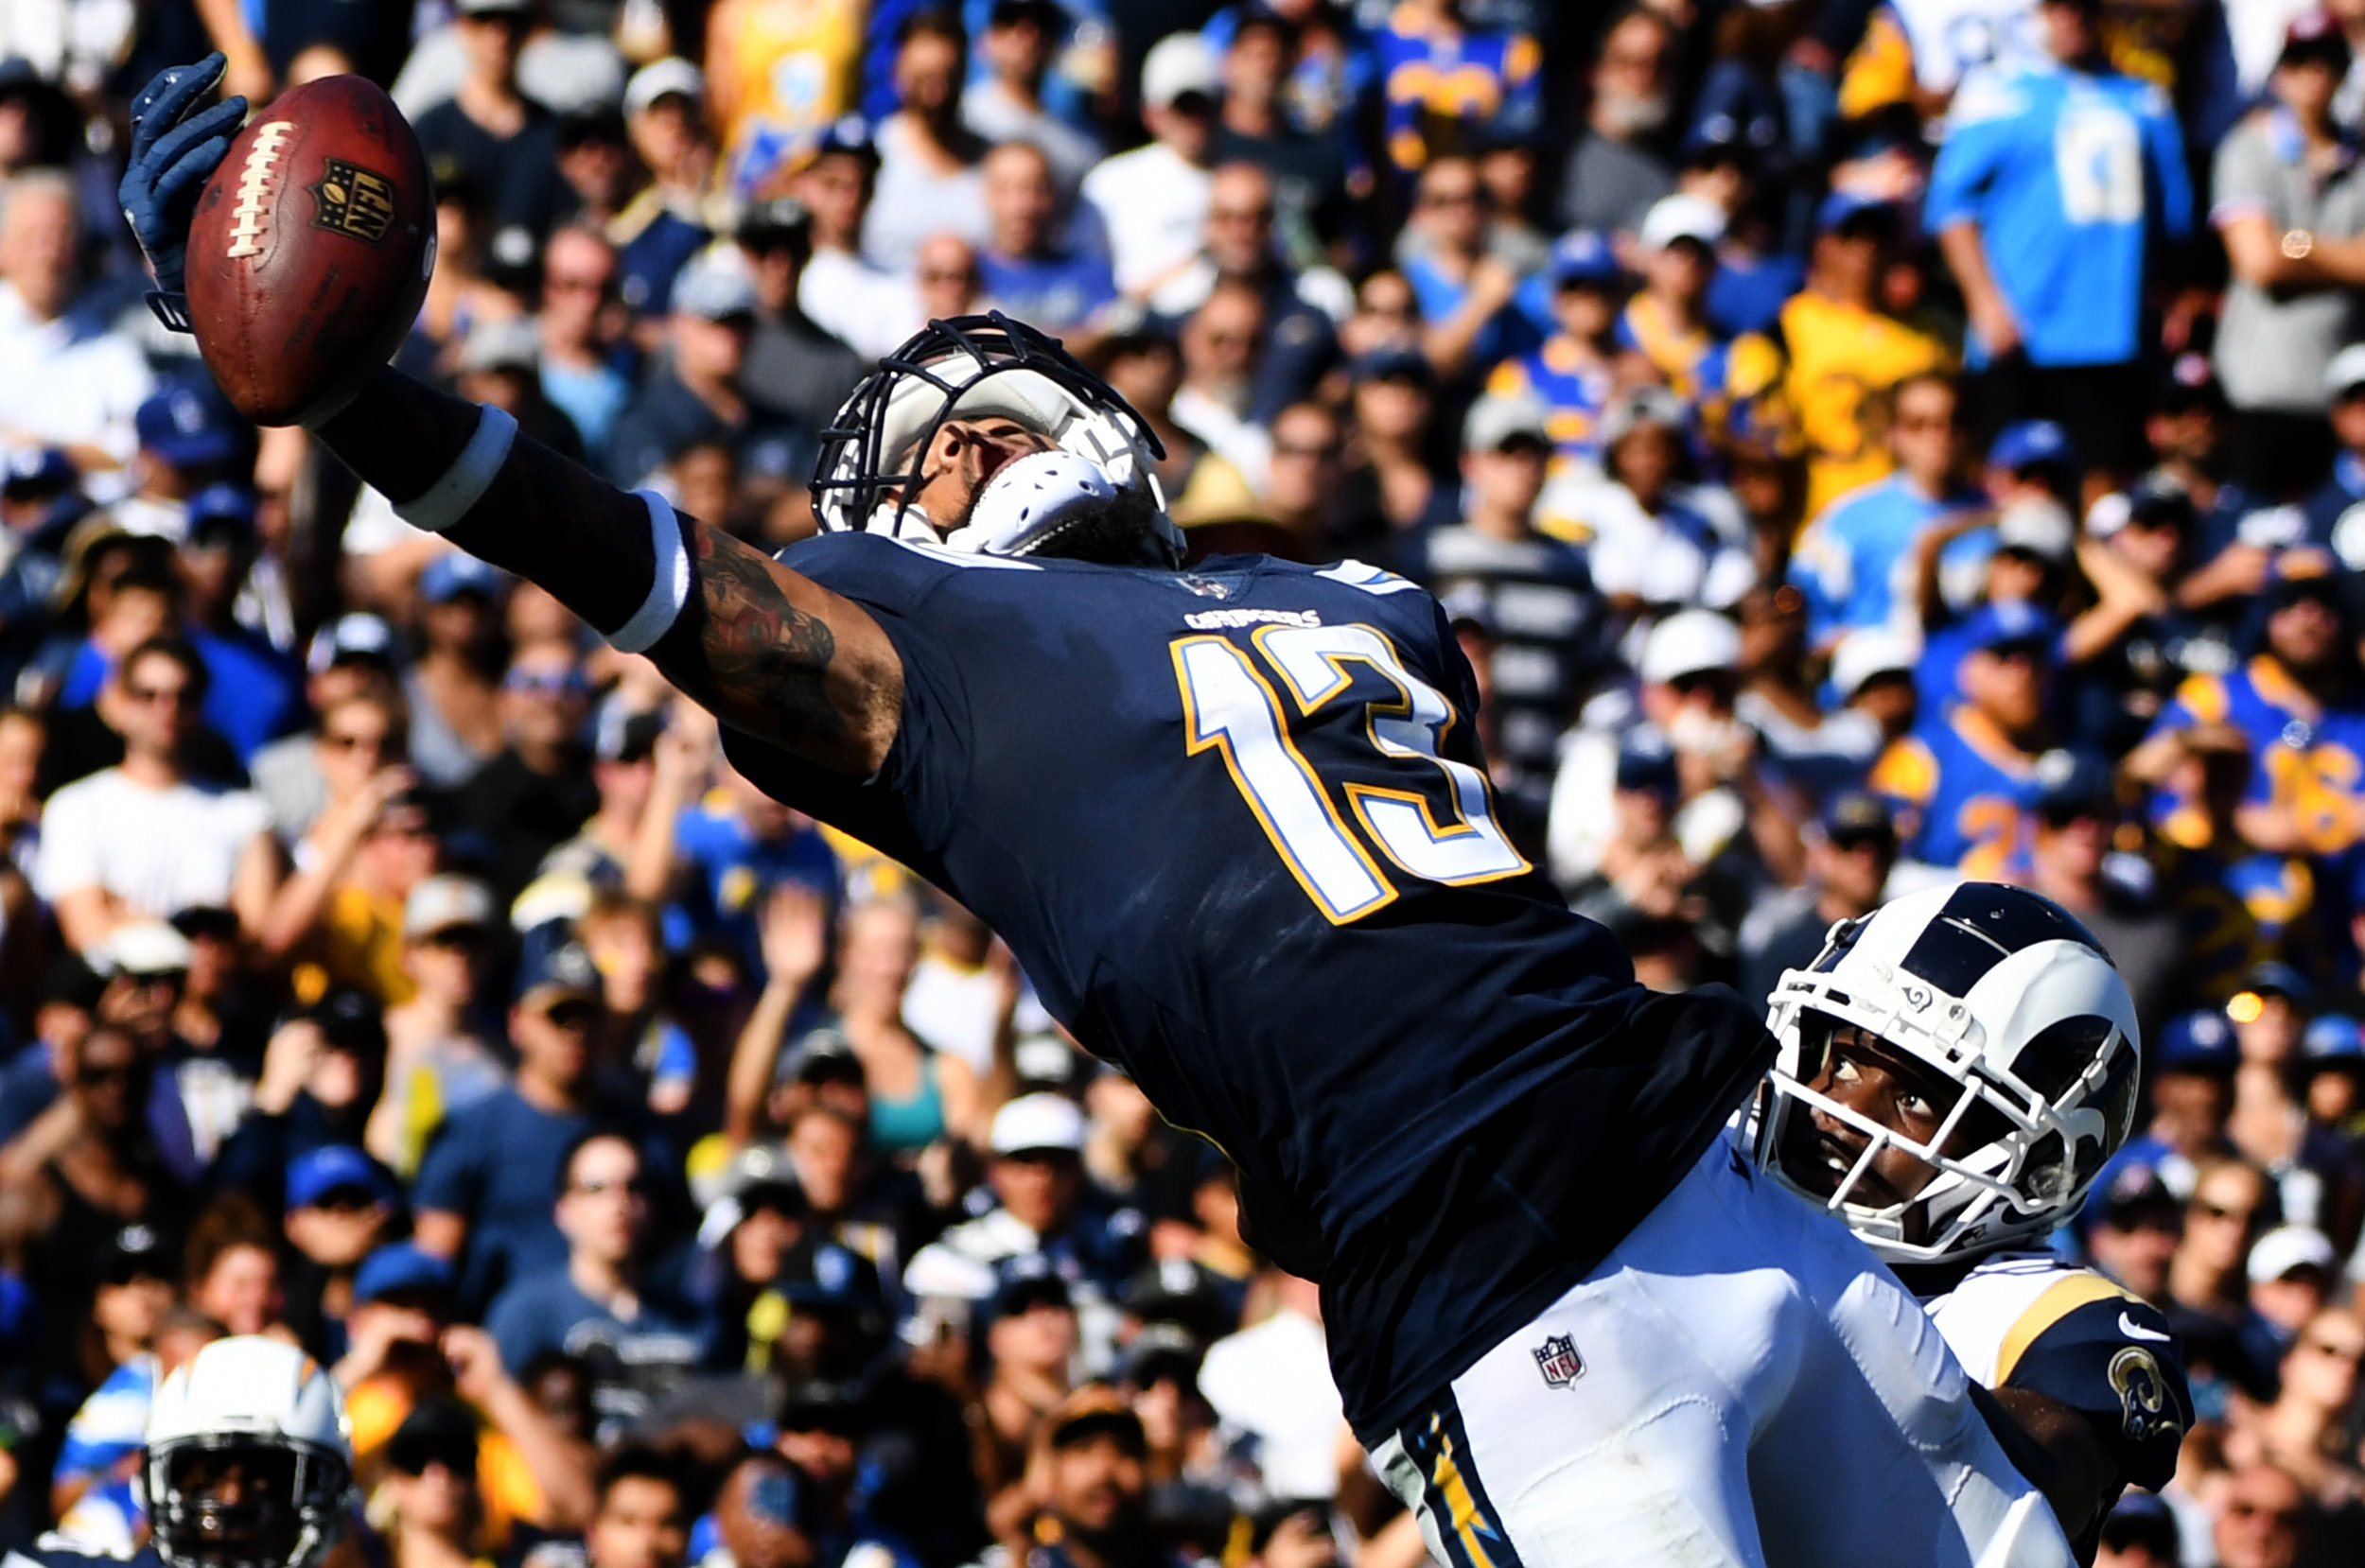 Wide receiver Keenan Allen #13 of the Los Angeles Chargers can't hold onto a pass in the end zone against the Los Angeles Rams in the second half of a NFL football game at the Los Angeles Memorial Coliseum on Sunday, September 23, 2018 in Los Angeles, California. Los Angeles Rams won 35-23.